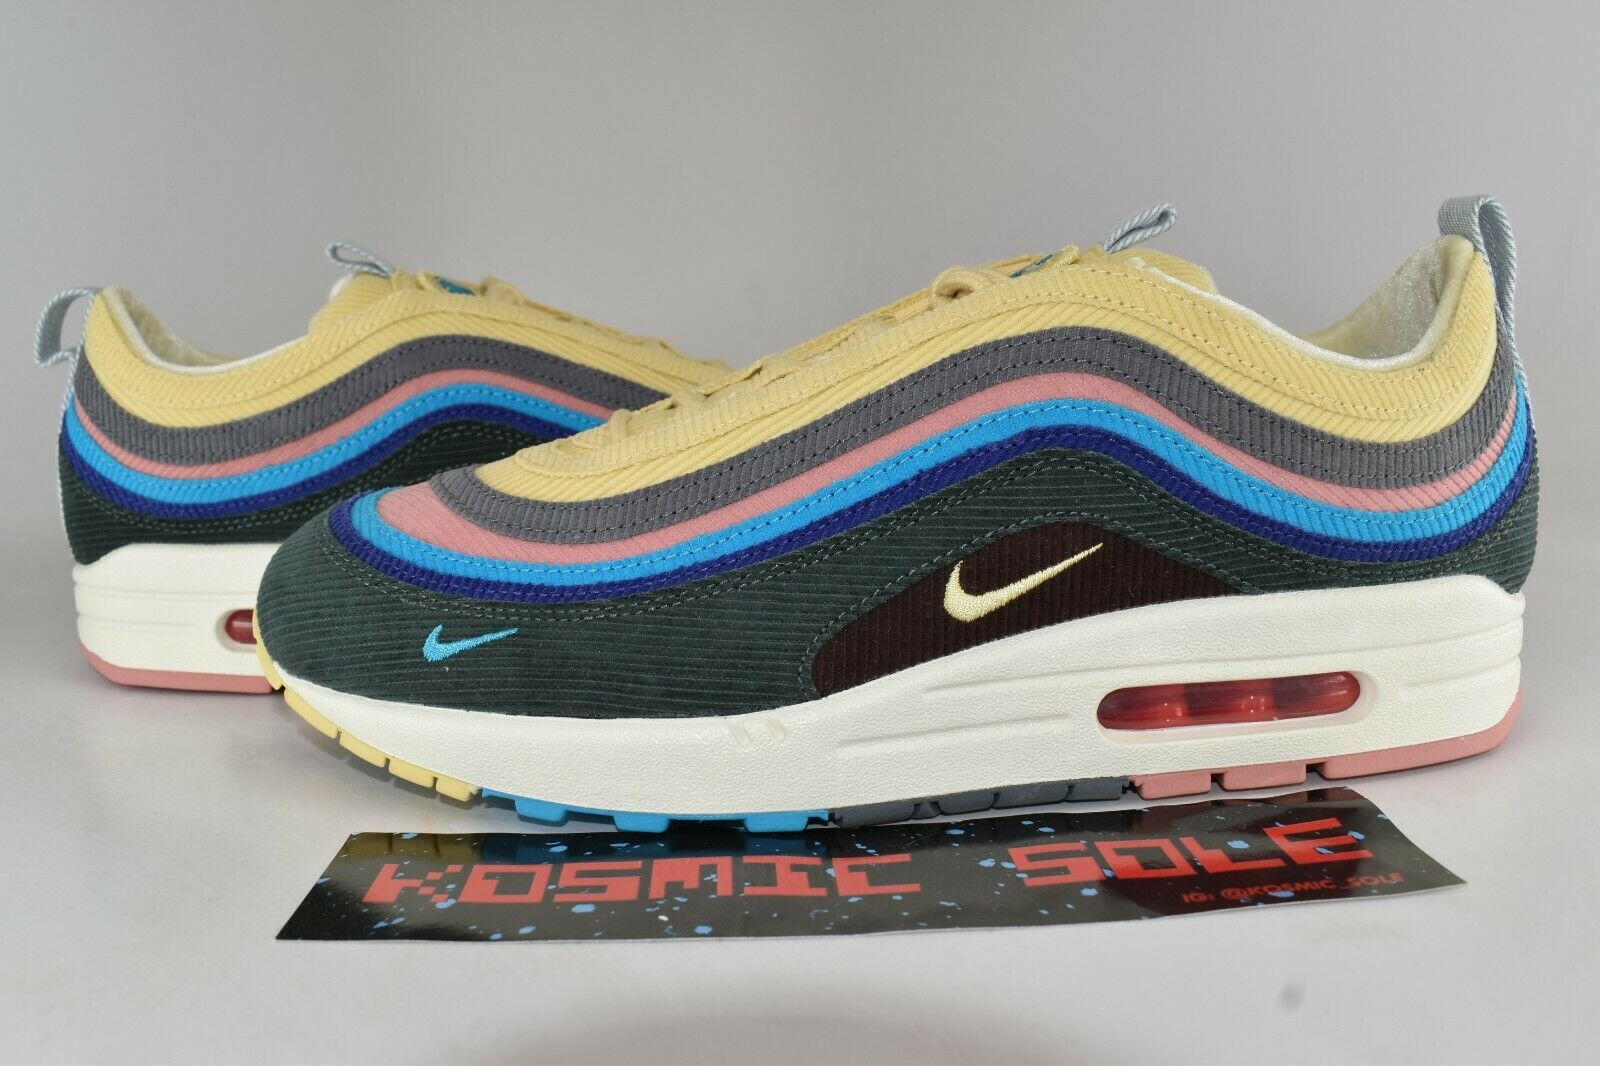 Nike Air Max 1 97 Sean Wotherspoon Style AJ4219-400 Size 10.5